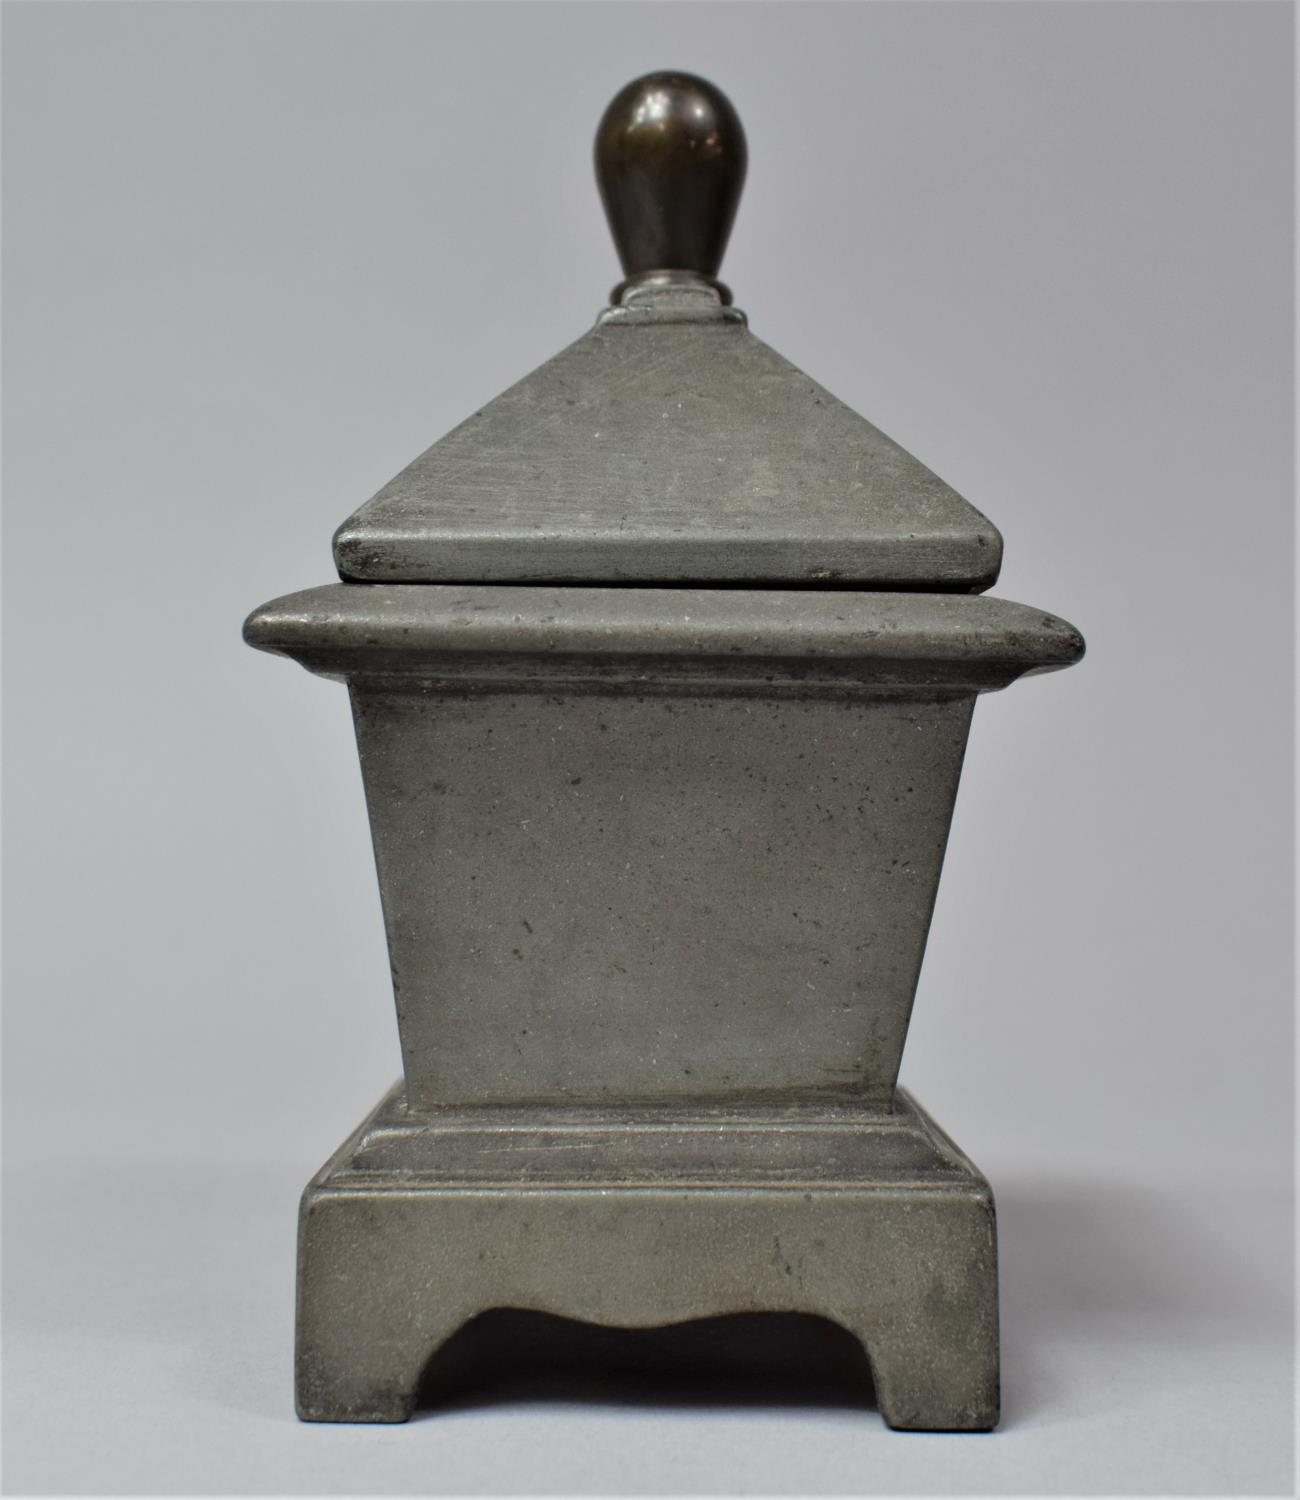 A 19th Century Lead Tobacco Box of Sarcophagus Form, 11cm Wide - Image 3 of 6